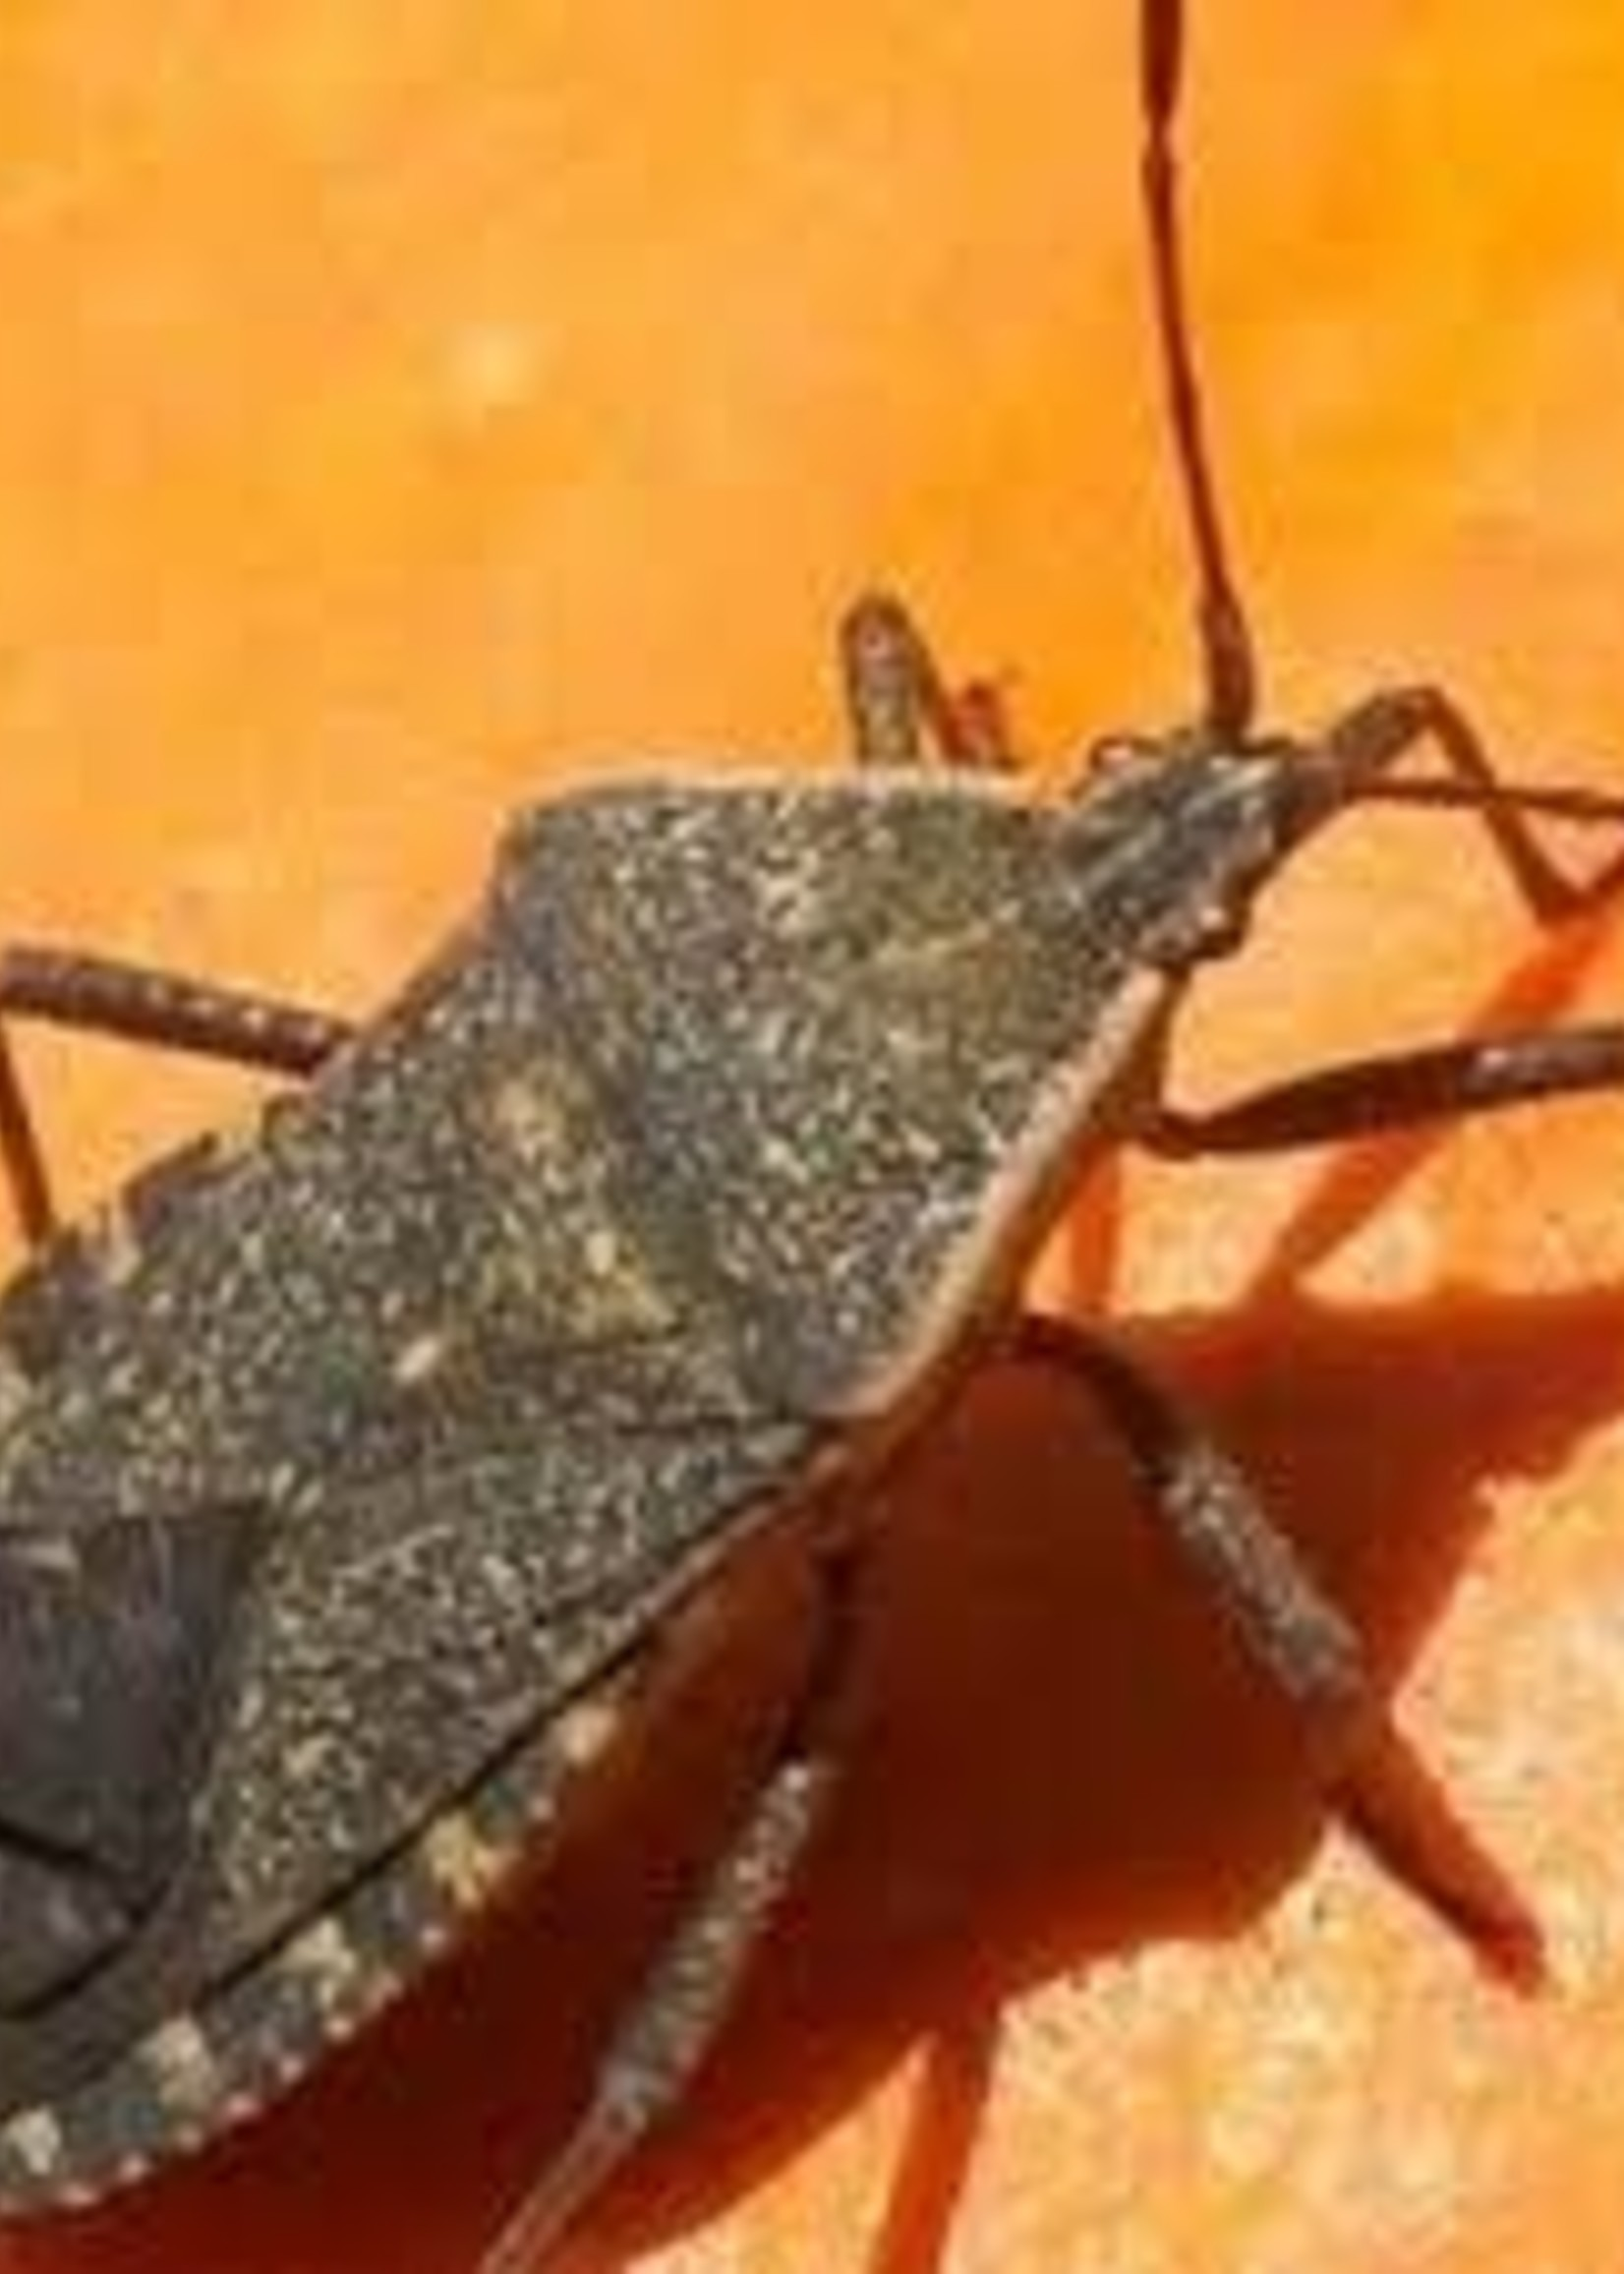 Insect, Squash Bug